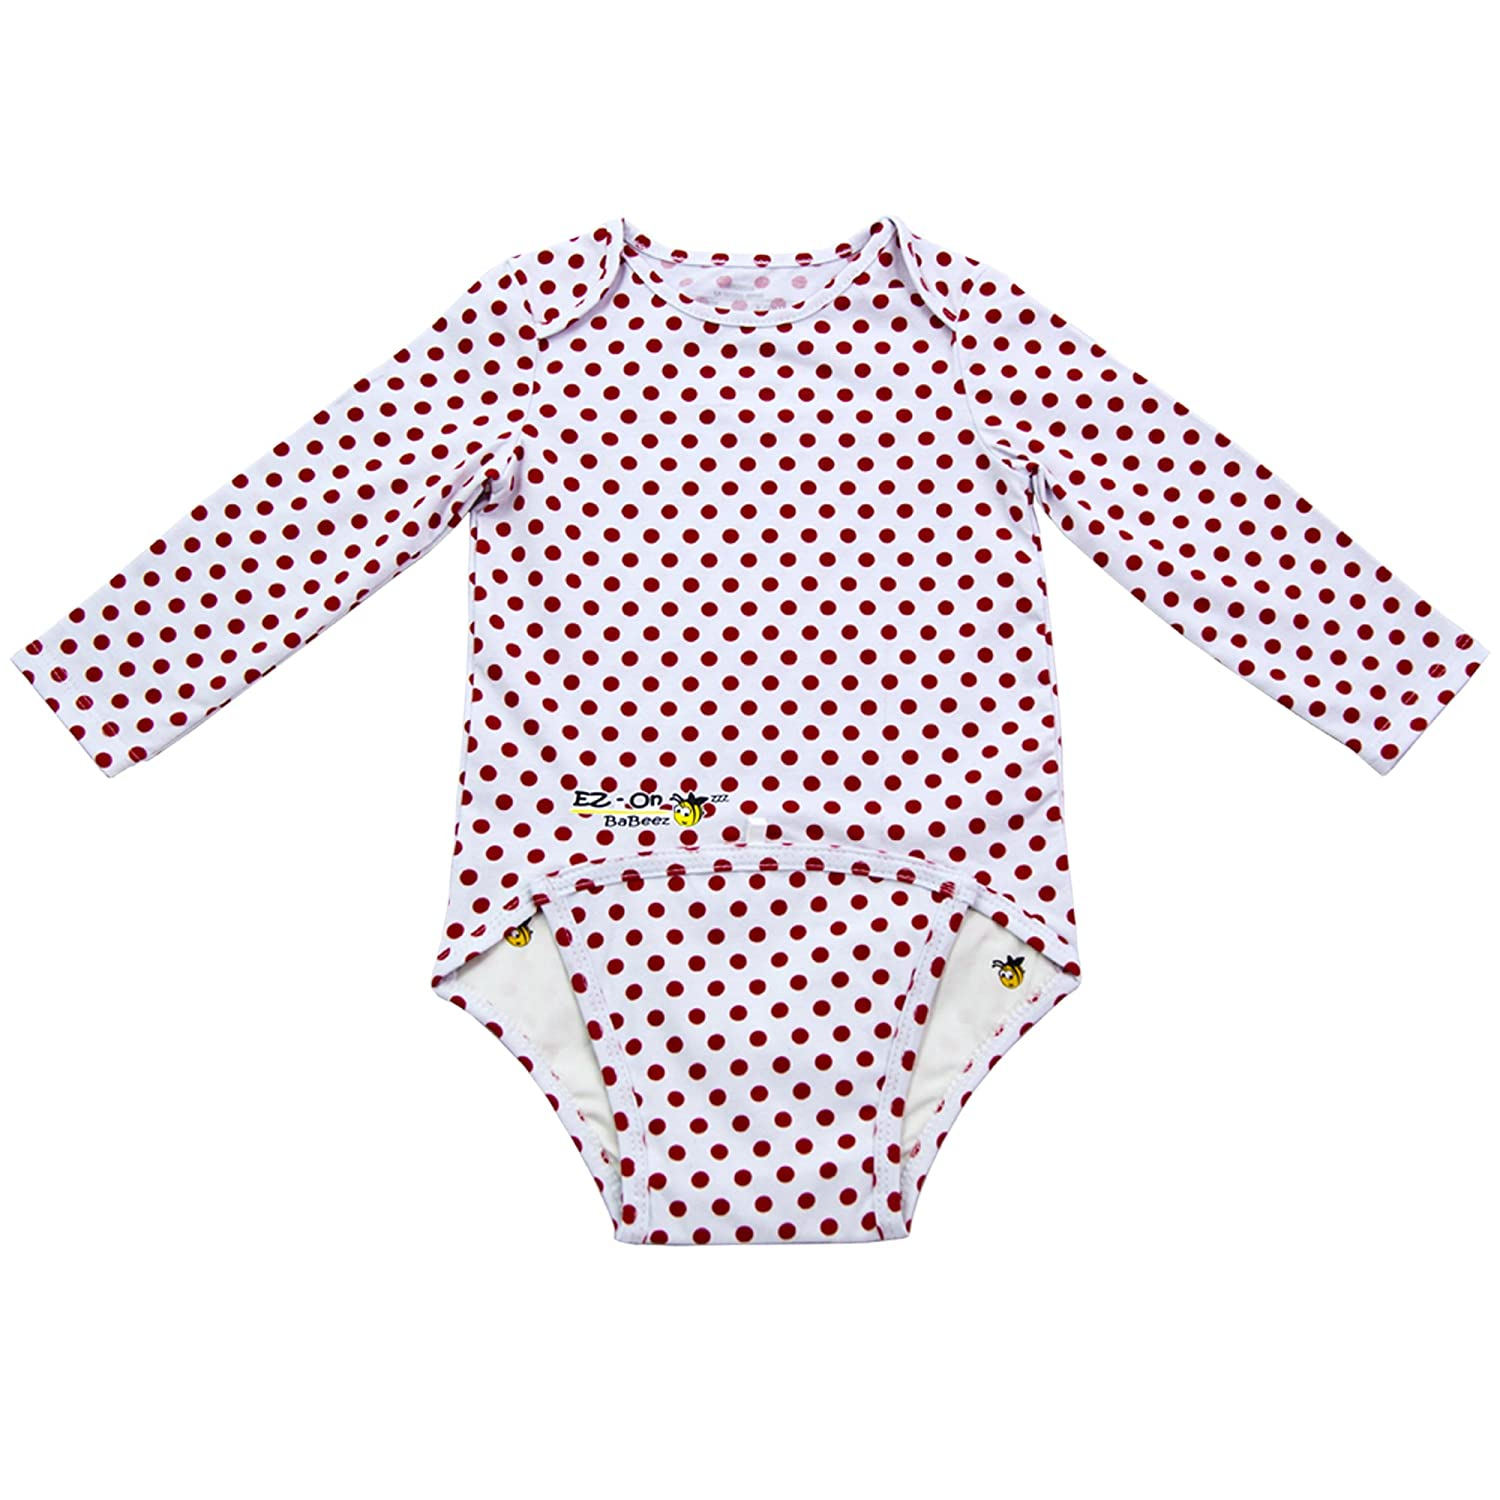 日本最級 EZ-On Dot BaBeez White SHIRT Months|Red ユニセックスベビー B07F652F9L Red Dot on White 9 - 12 Months 9 - 12 Months|Red Dot on White, 枡屋酒店:21ecb1e1 --- mcrisartesanato.com.br